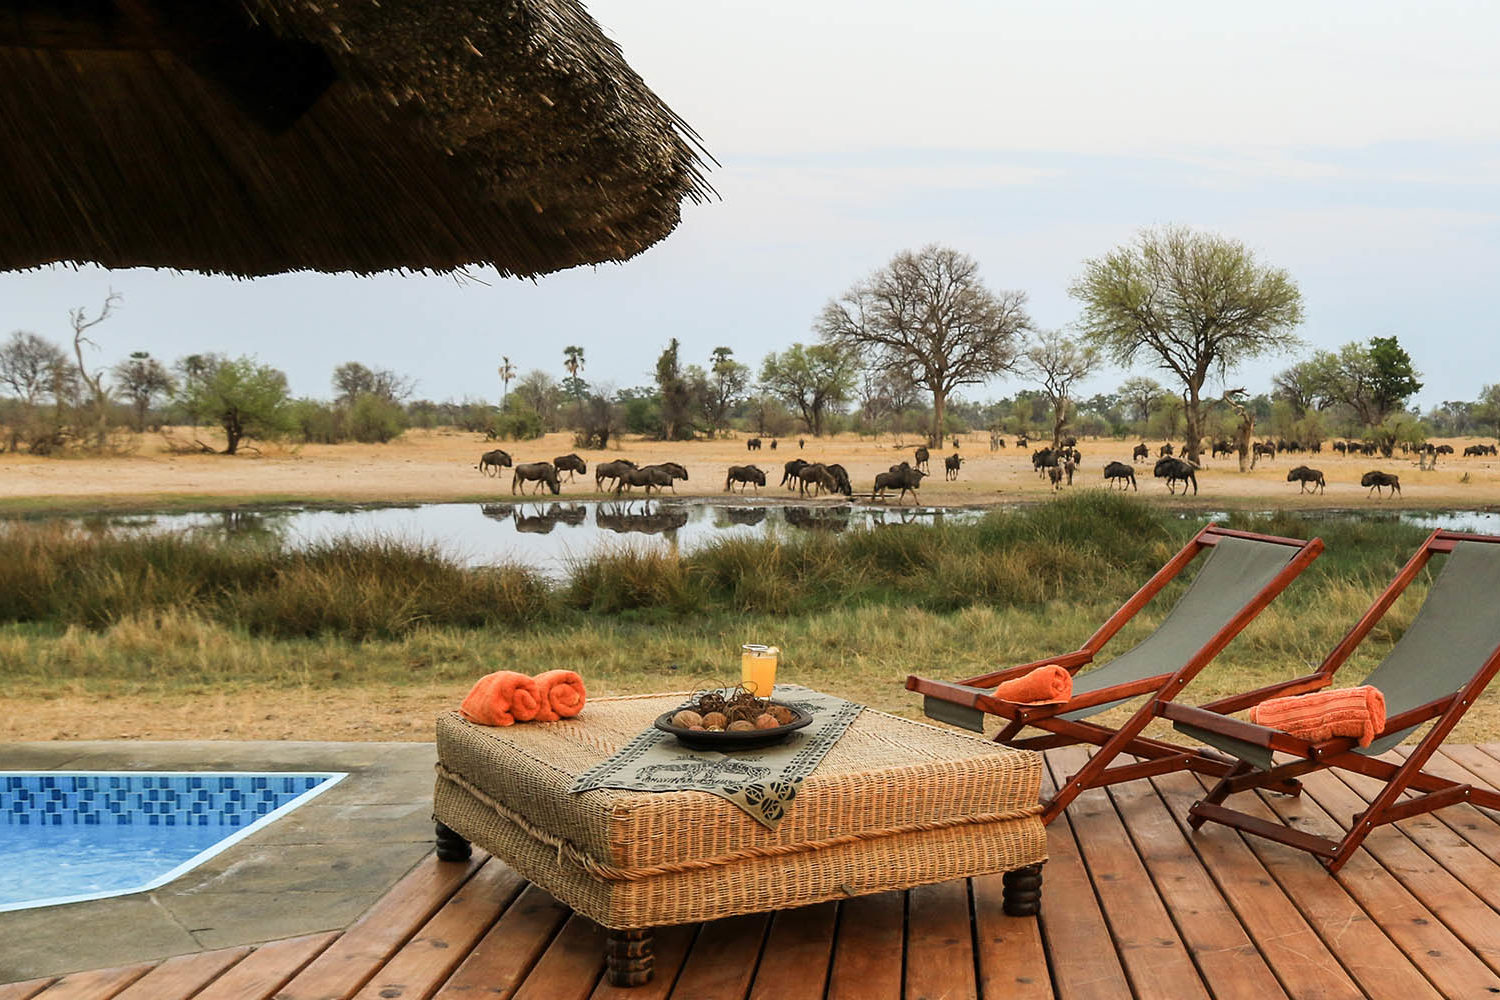 bomani tented lodge hwange-national-park-lodges-zimbabwe-accommodation-tailored-experiences-deck-views-wildlife